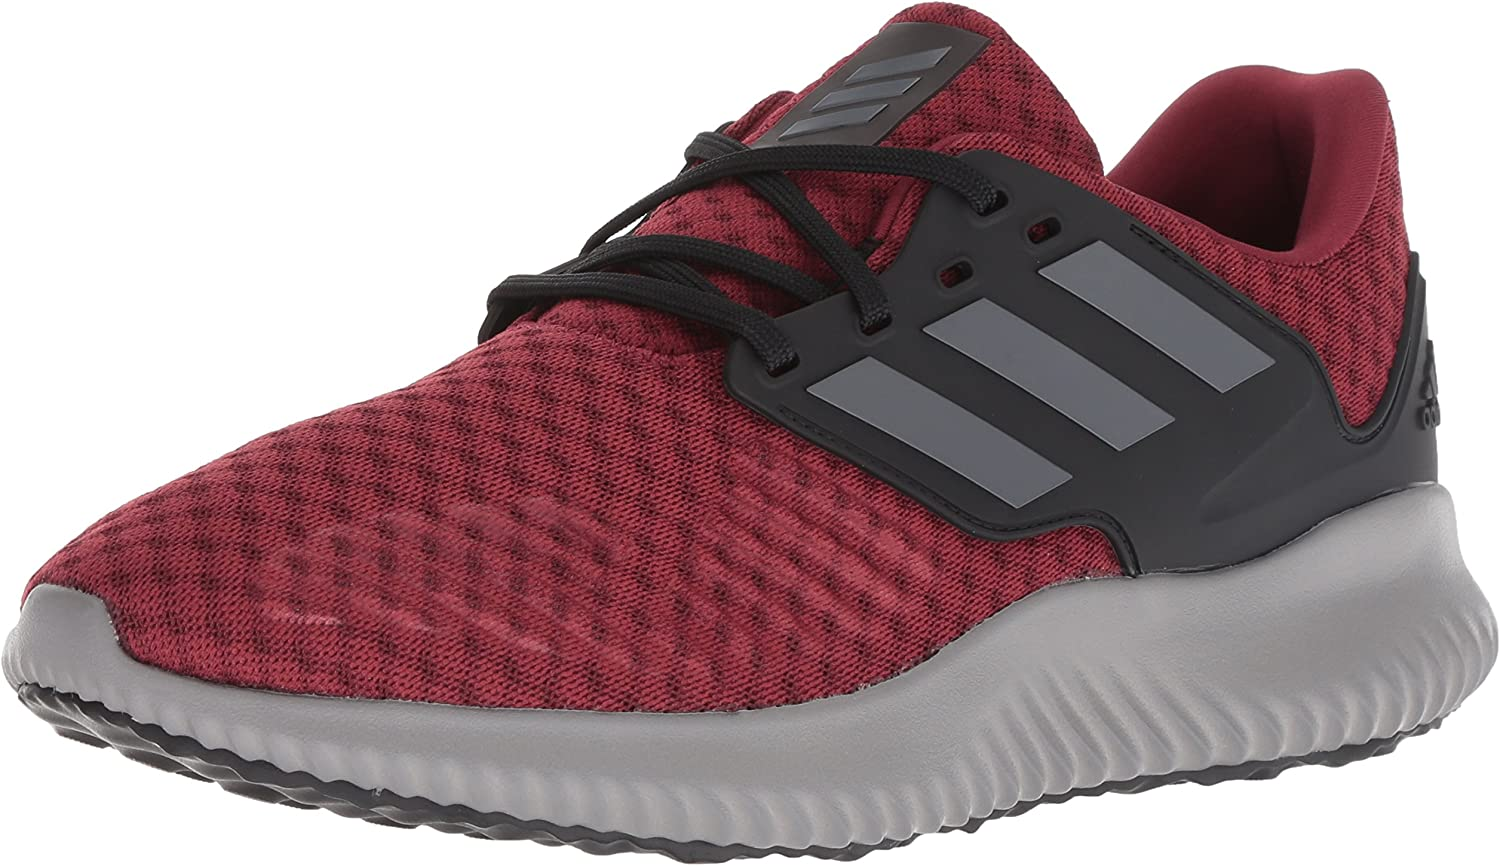 Adidas Men's Alphabounce rc.2 Running shoes